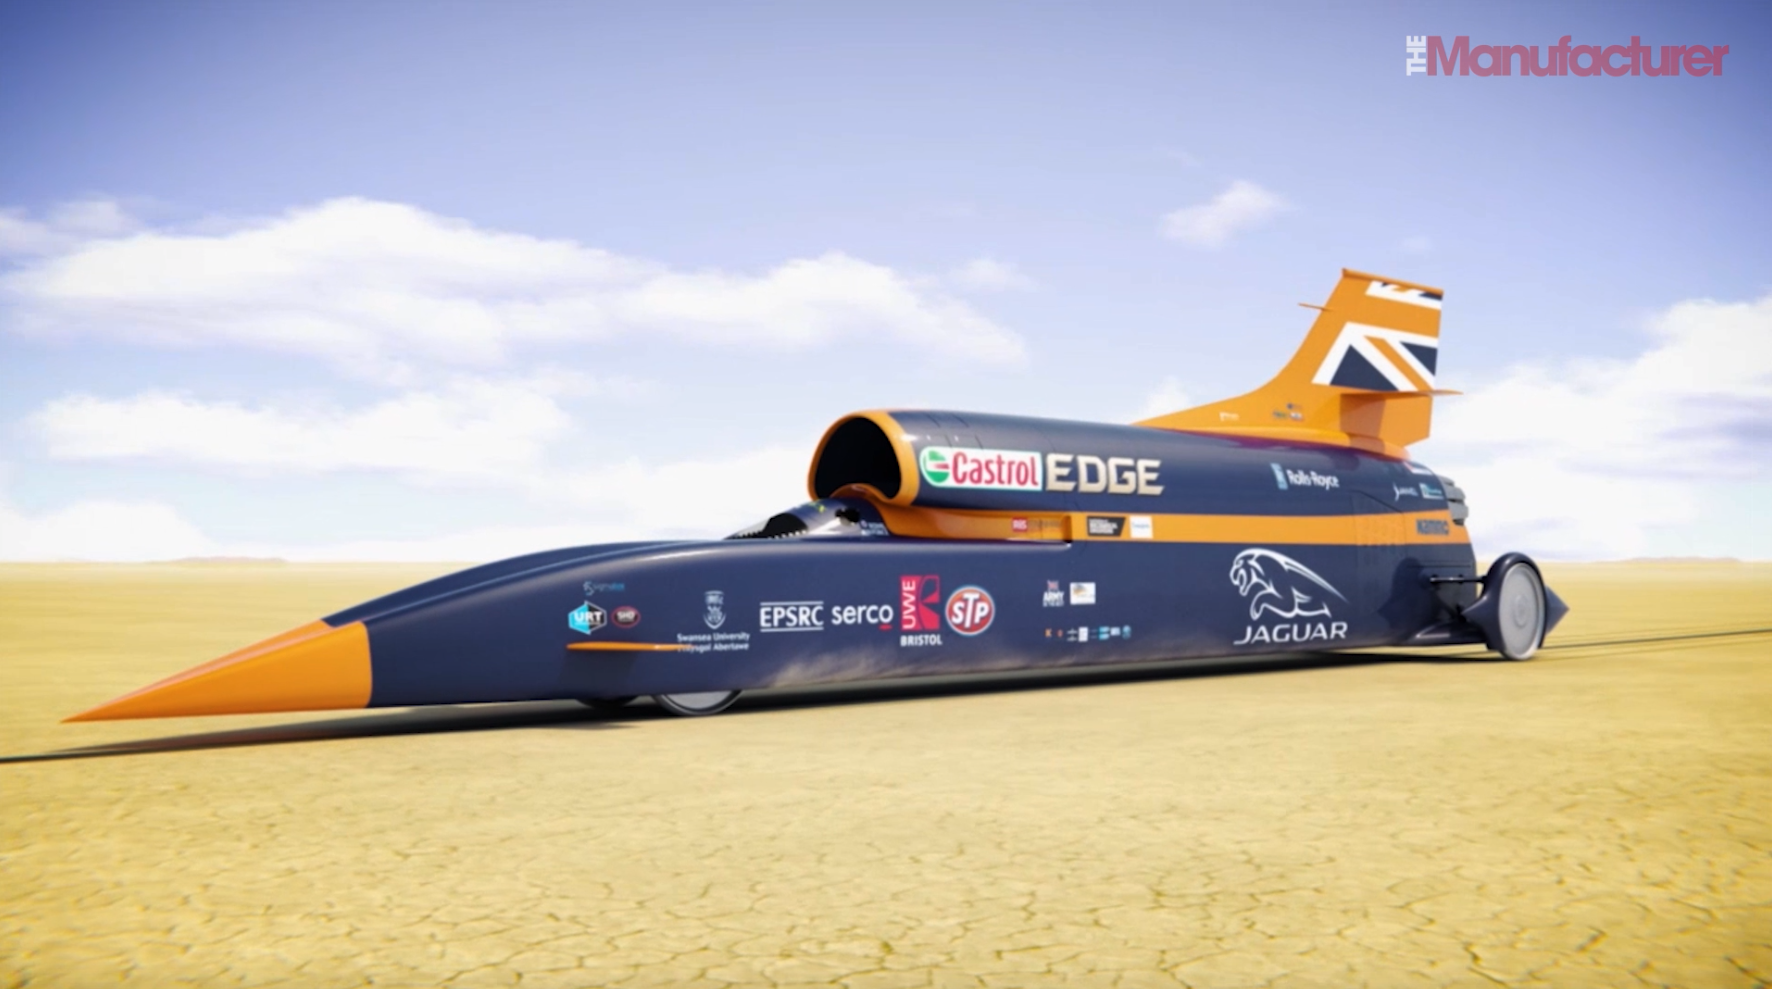 Thousands of visitors are expected to come and see history being made as Bloodhound SSC is driven at speeds of up to 200mph on the 1.7mile (2.7km) long runway.